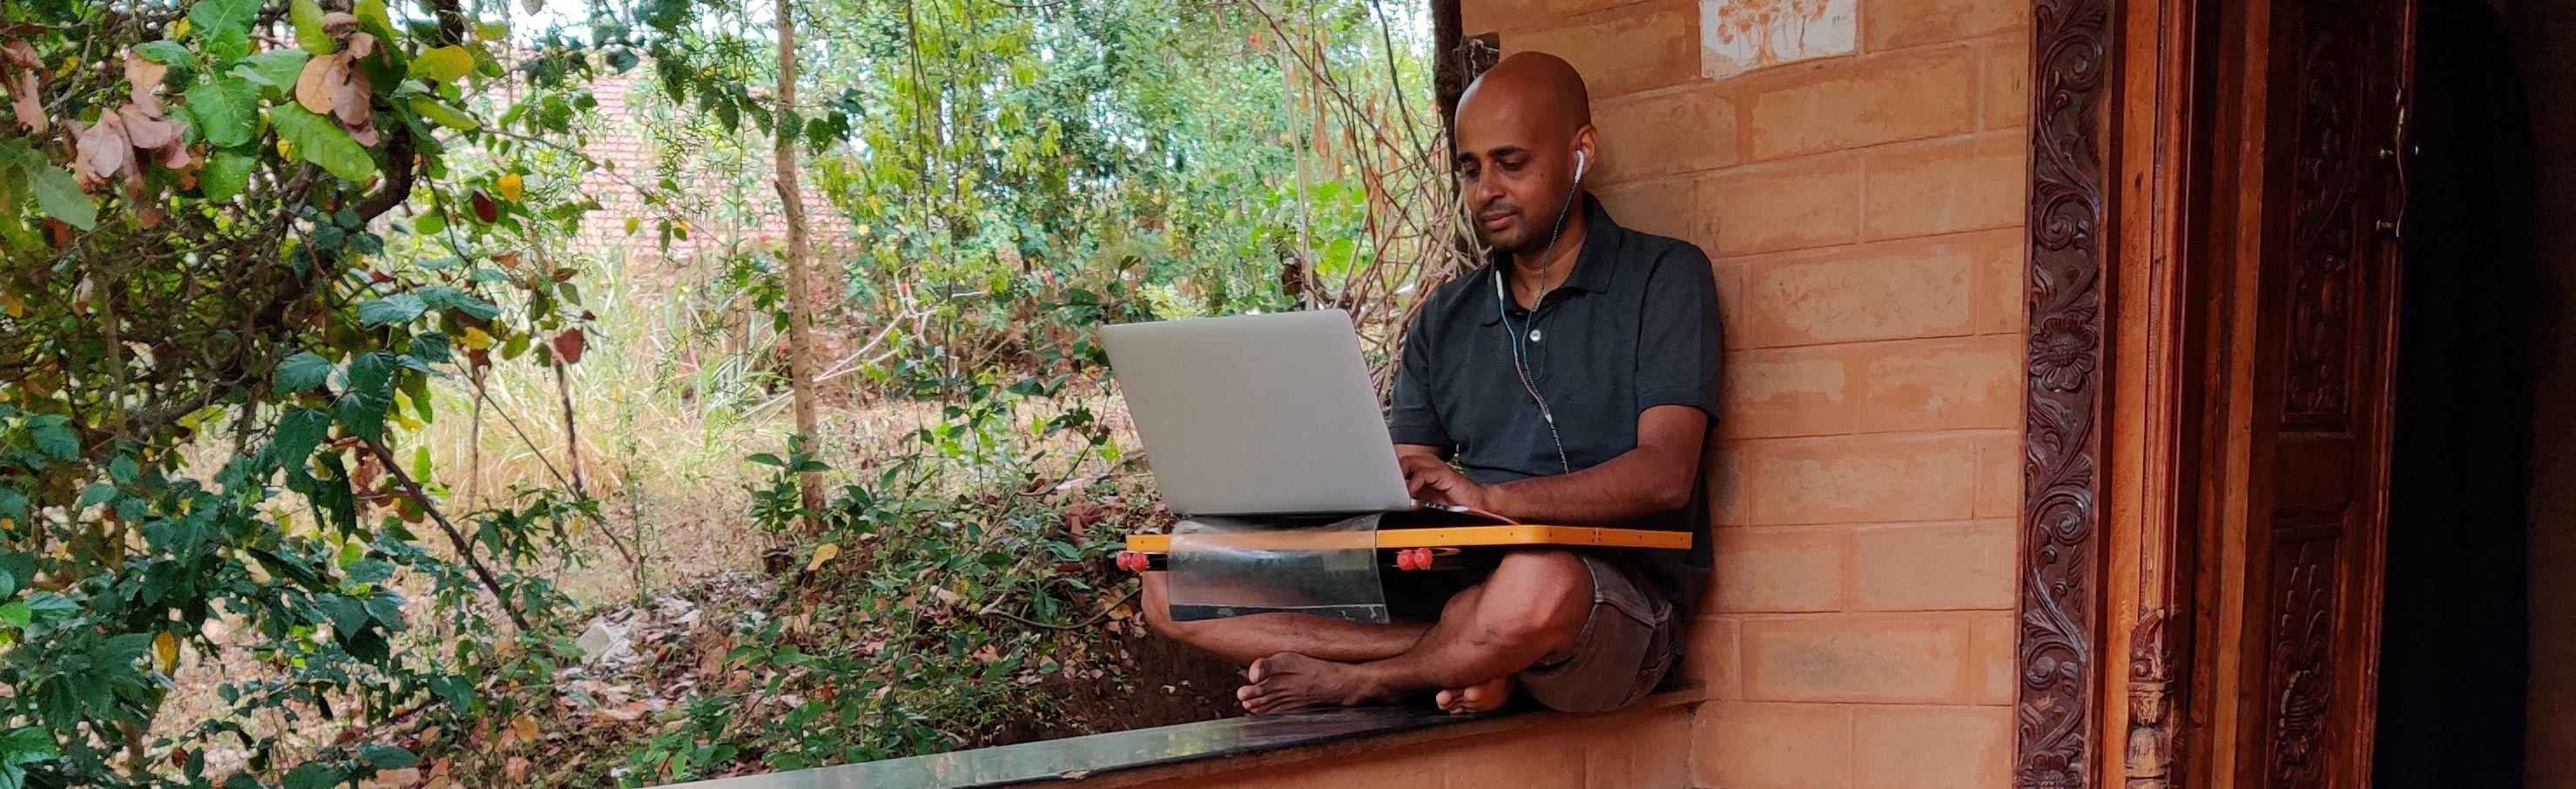 Photo of a man sitting on his porch, working on a laptop in remote India